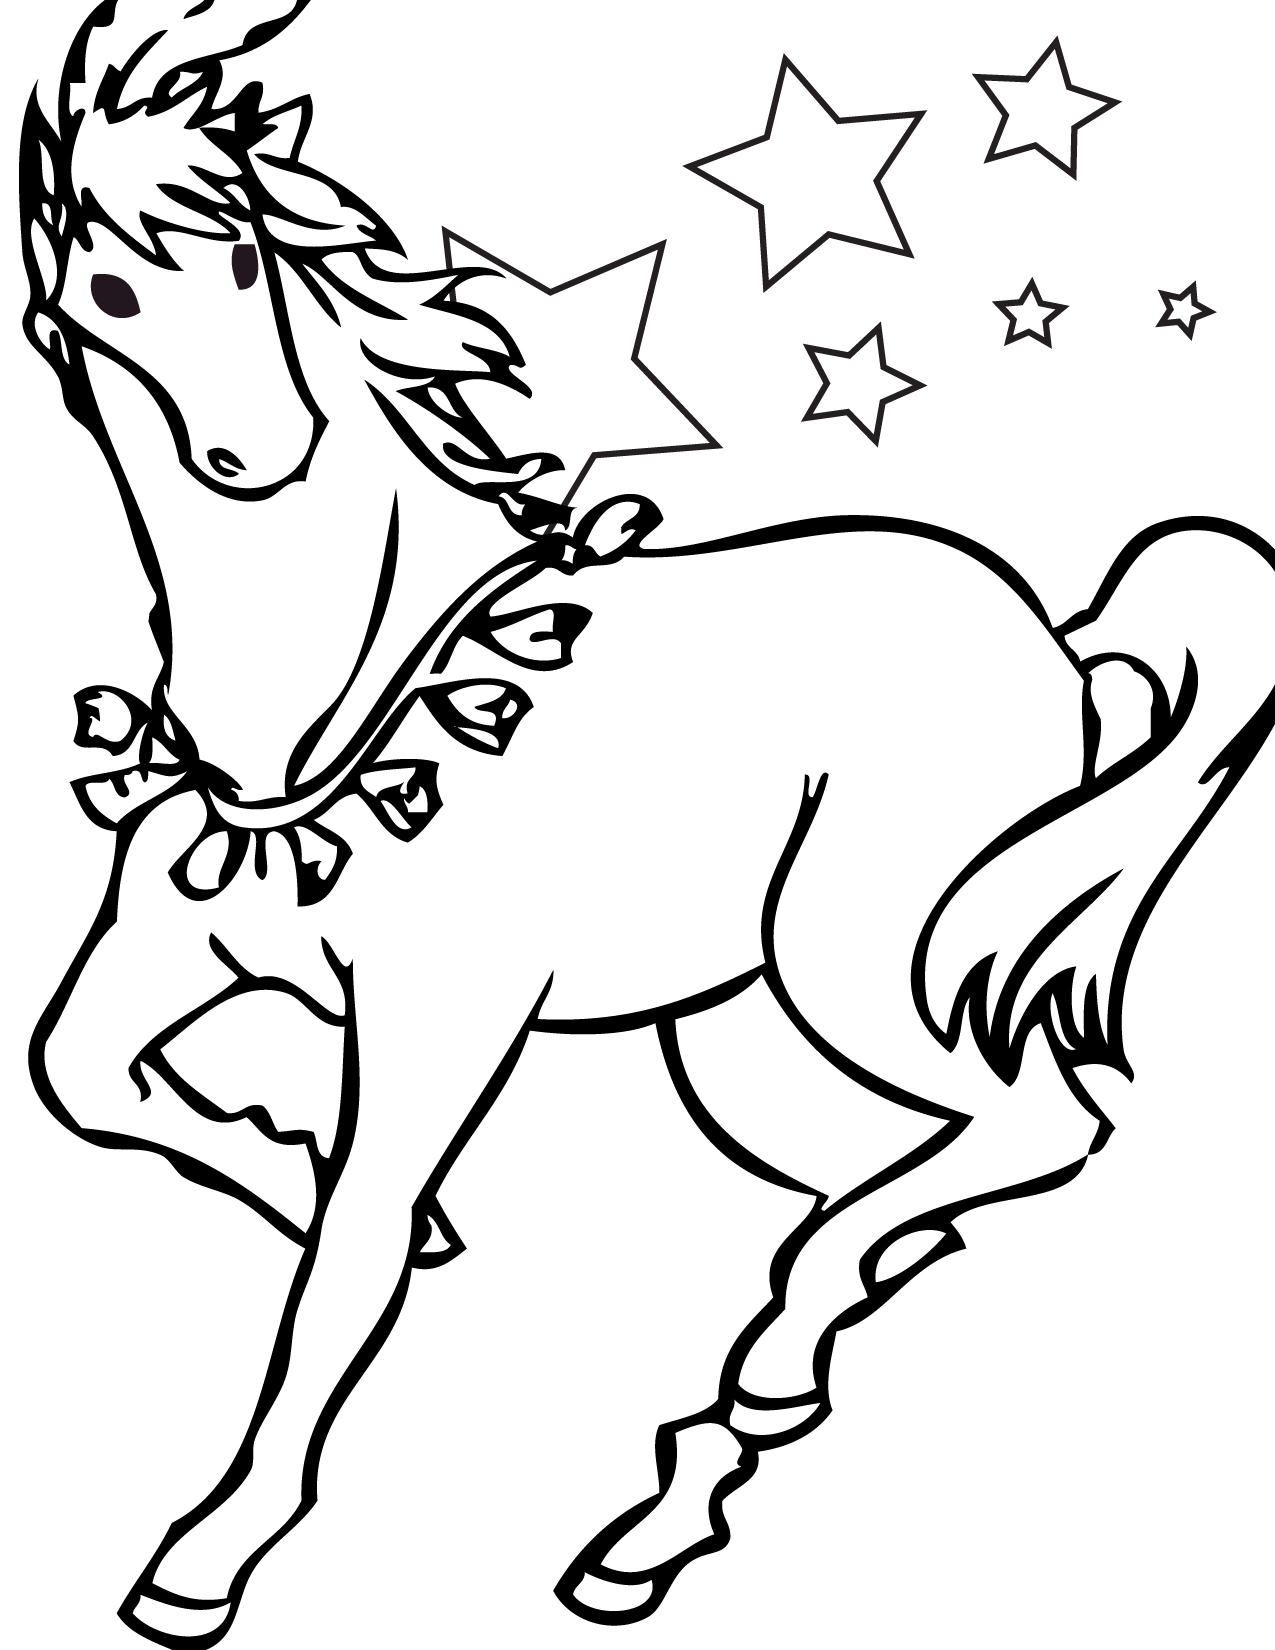 incredible domestic animal horse 20 horse coloring pages free printables. Black Bedroom Furniture Sets. Home Design Ideas